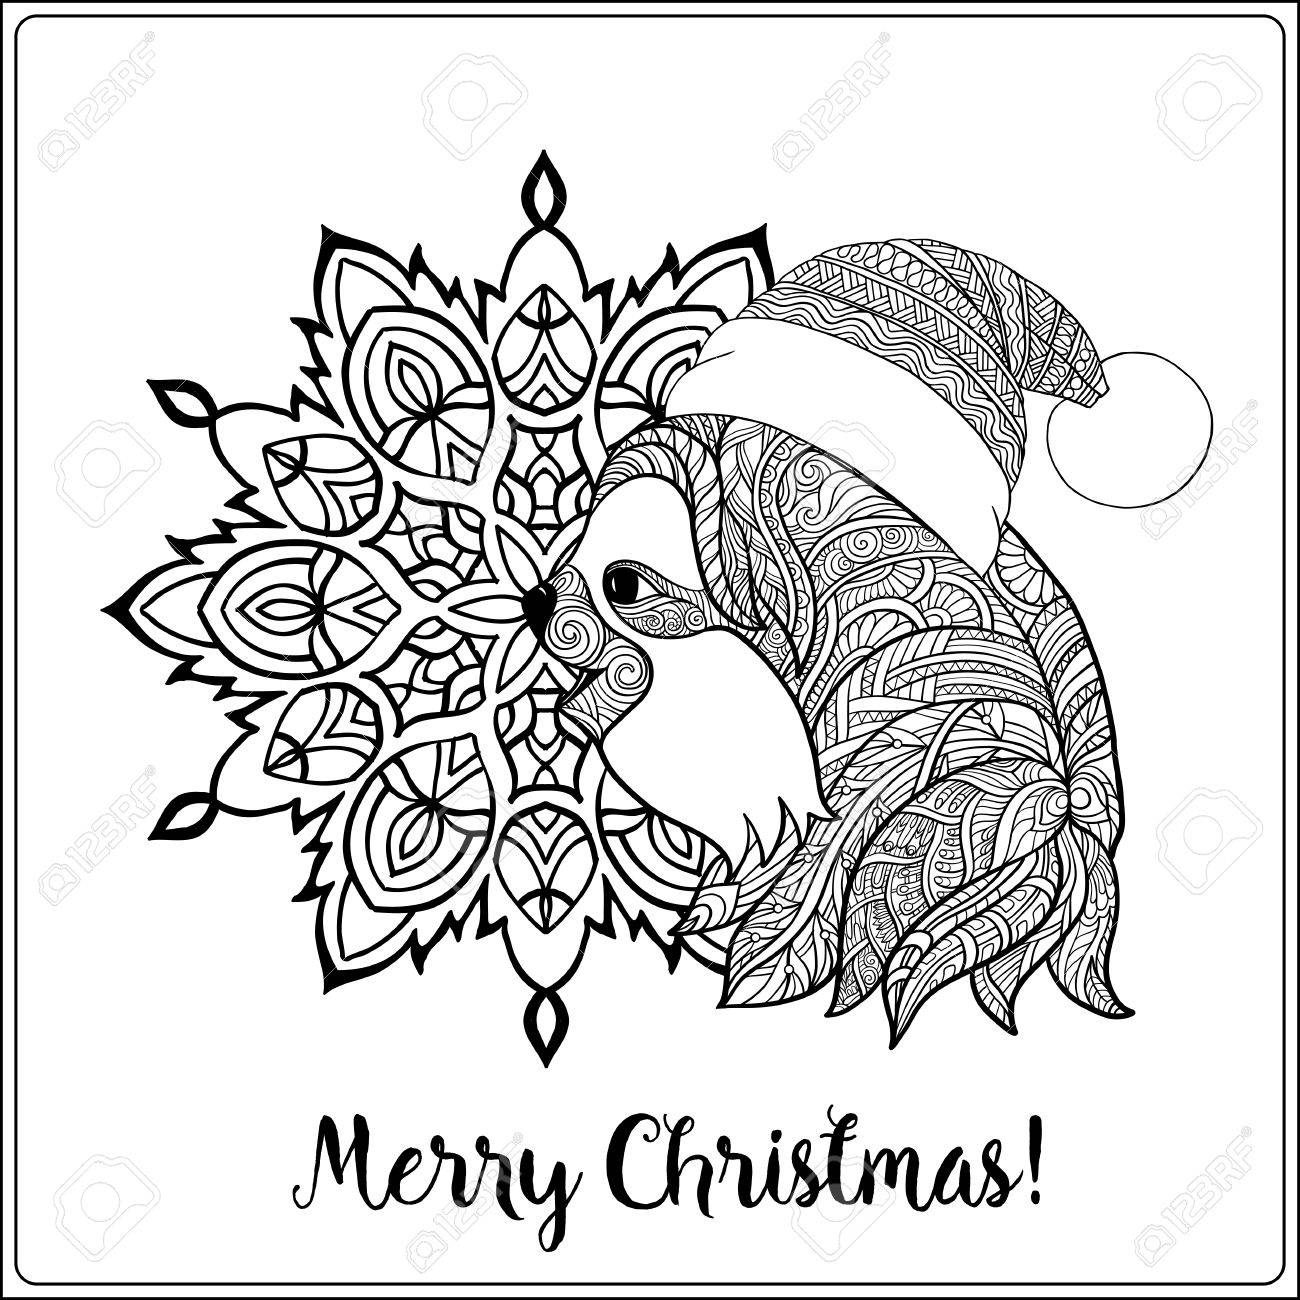 1300x1300 Decorative Patterned Sloth In The Hat Of Santa Claus On